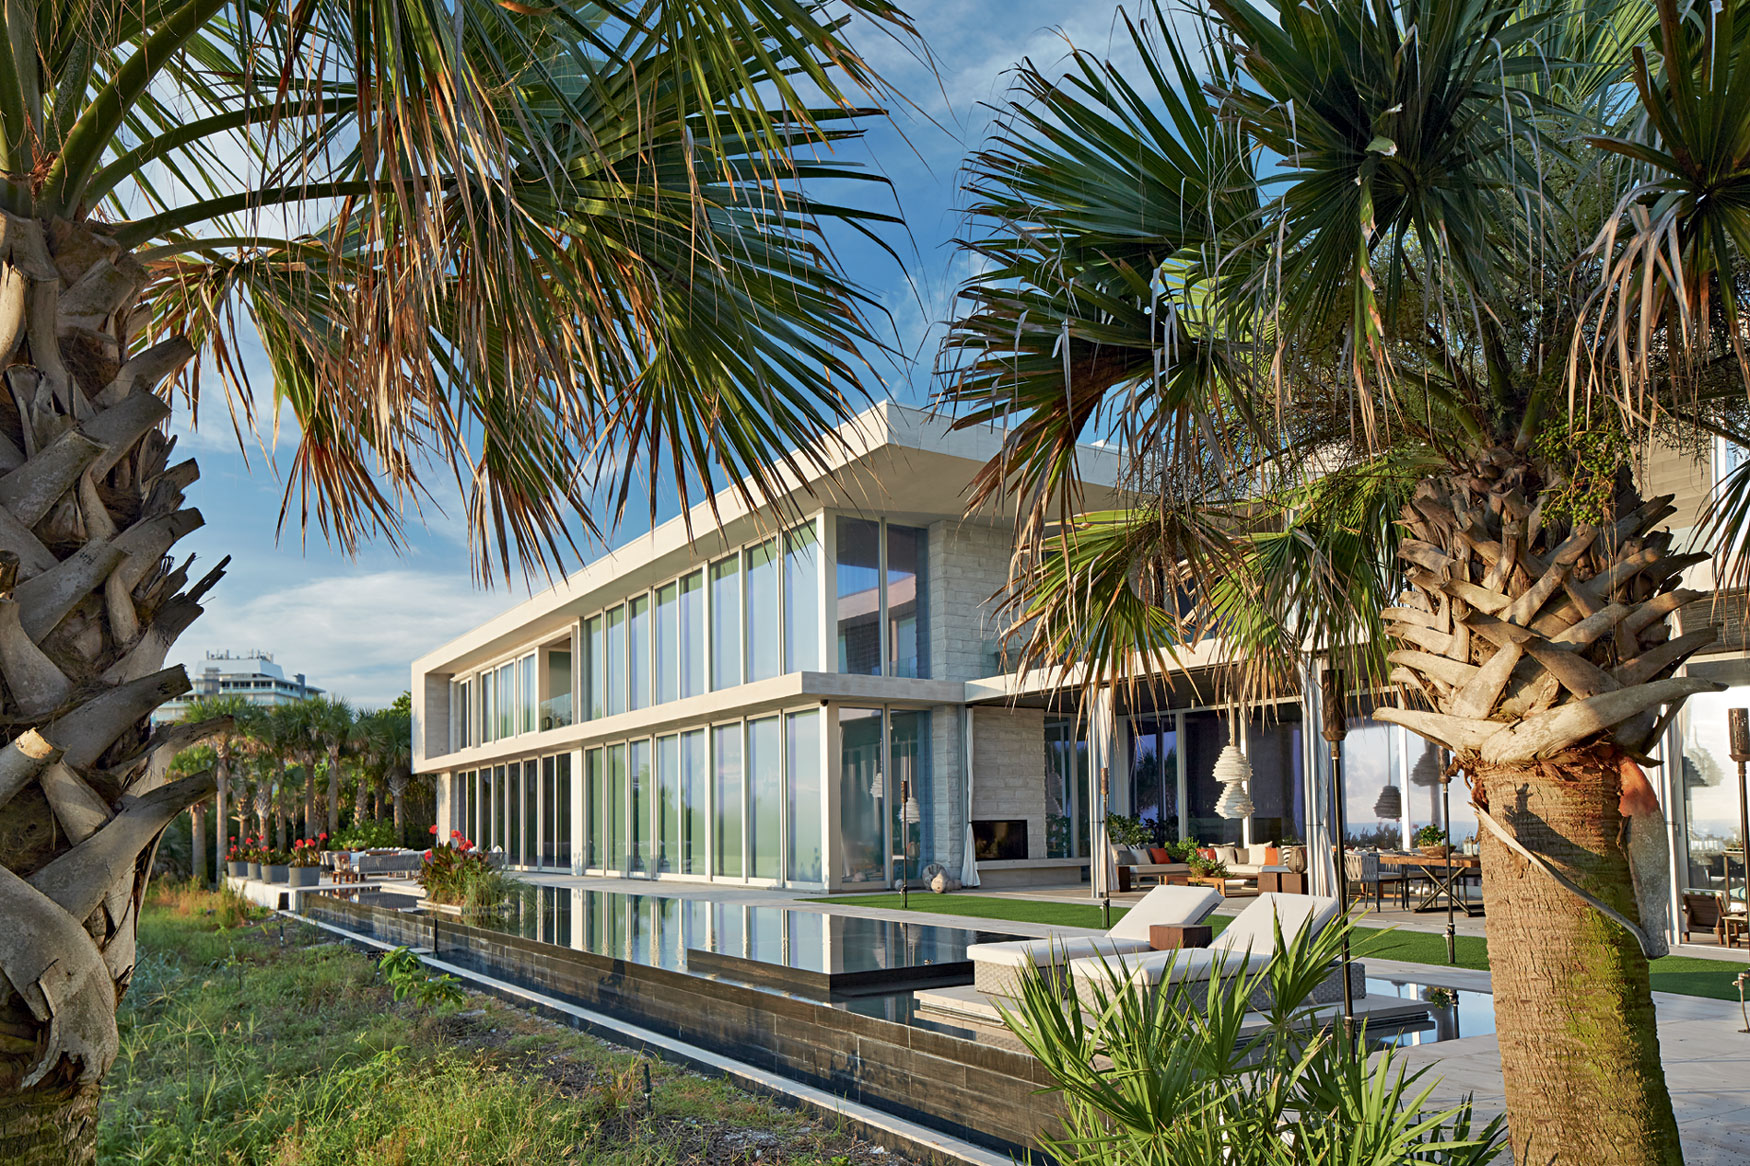 The main home is arranged around a double-height great room, with a vast expanse of glass connecting the space to the pool terrace and ocean views.